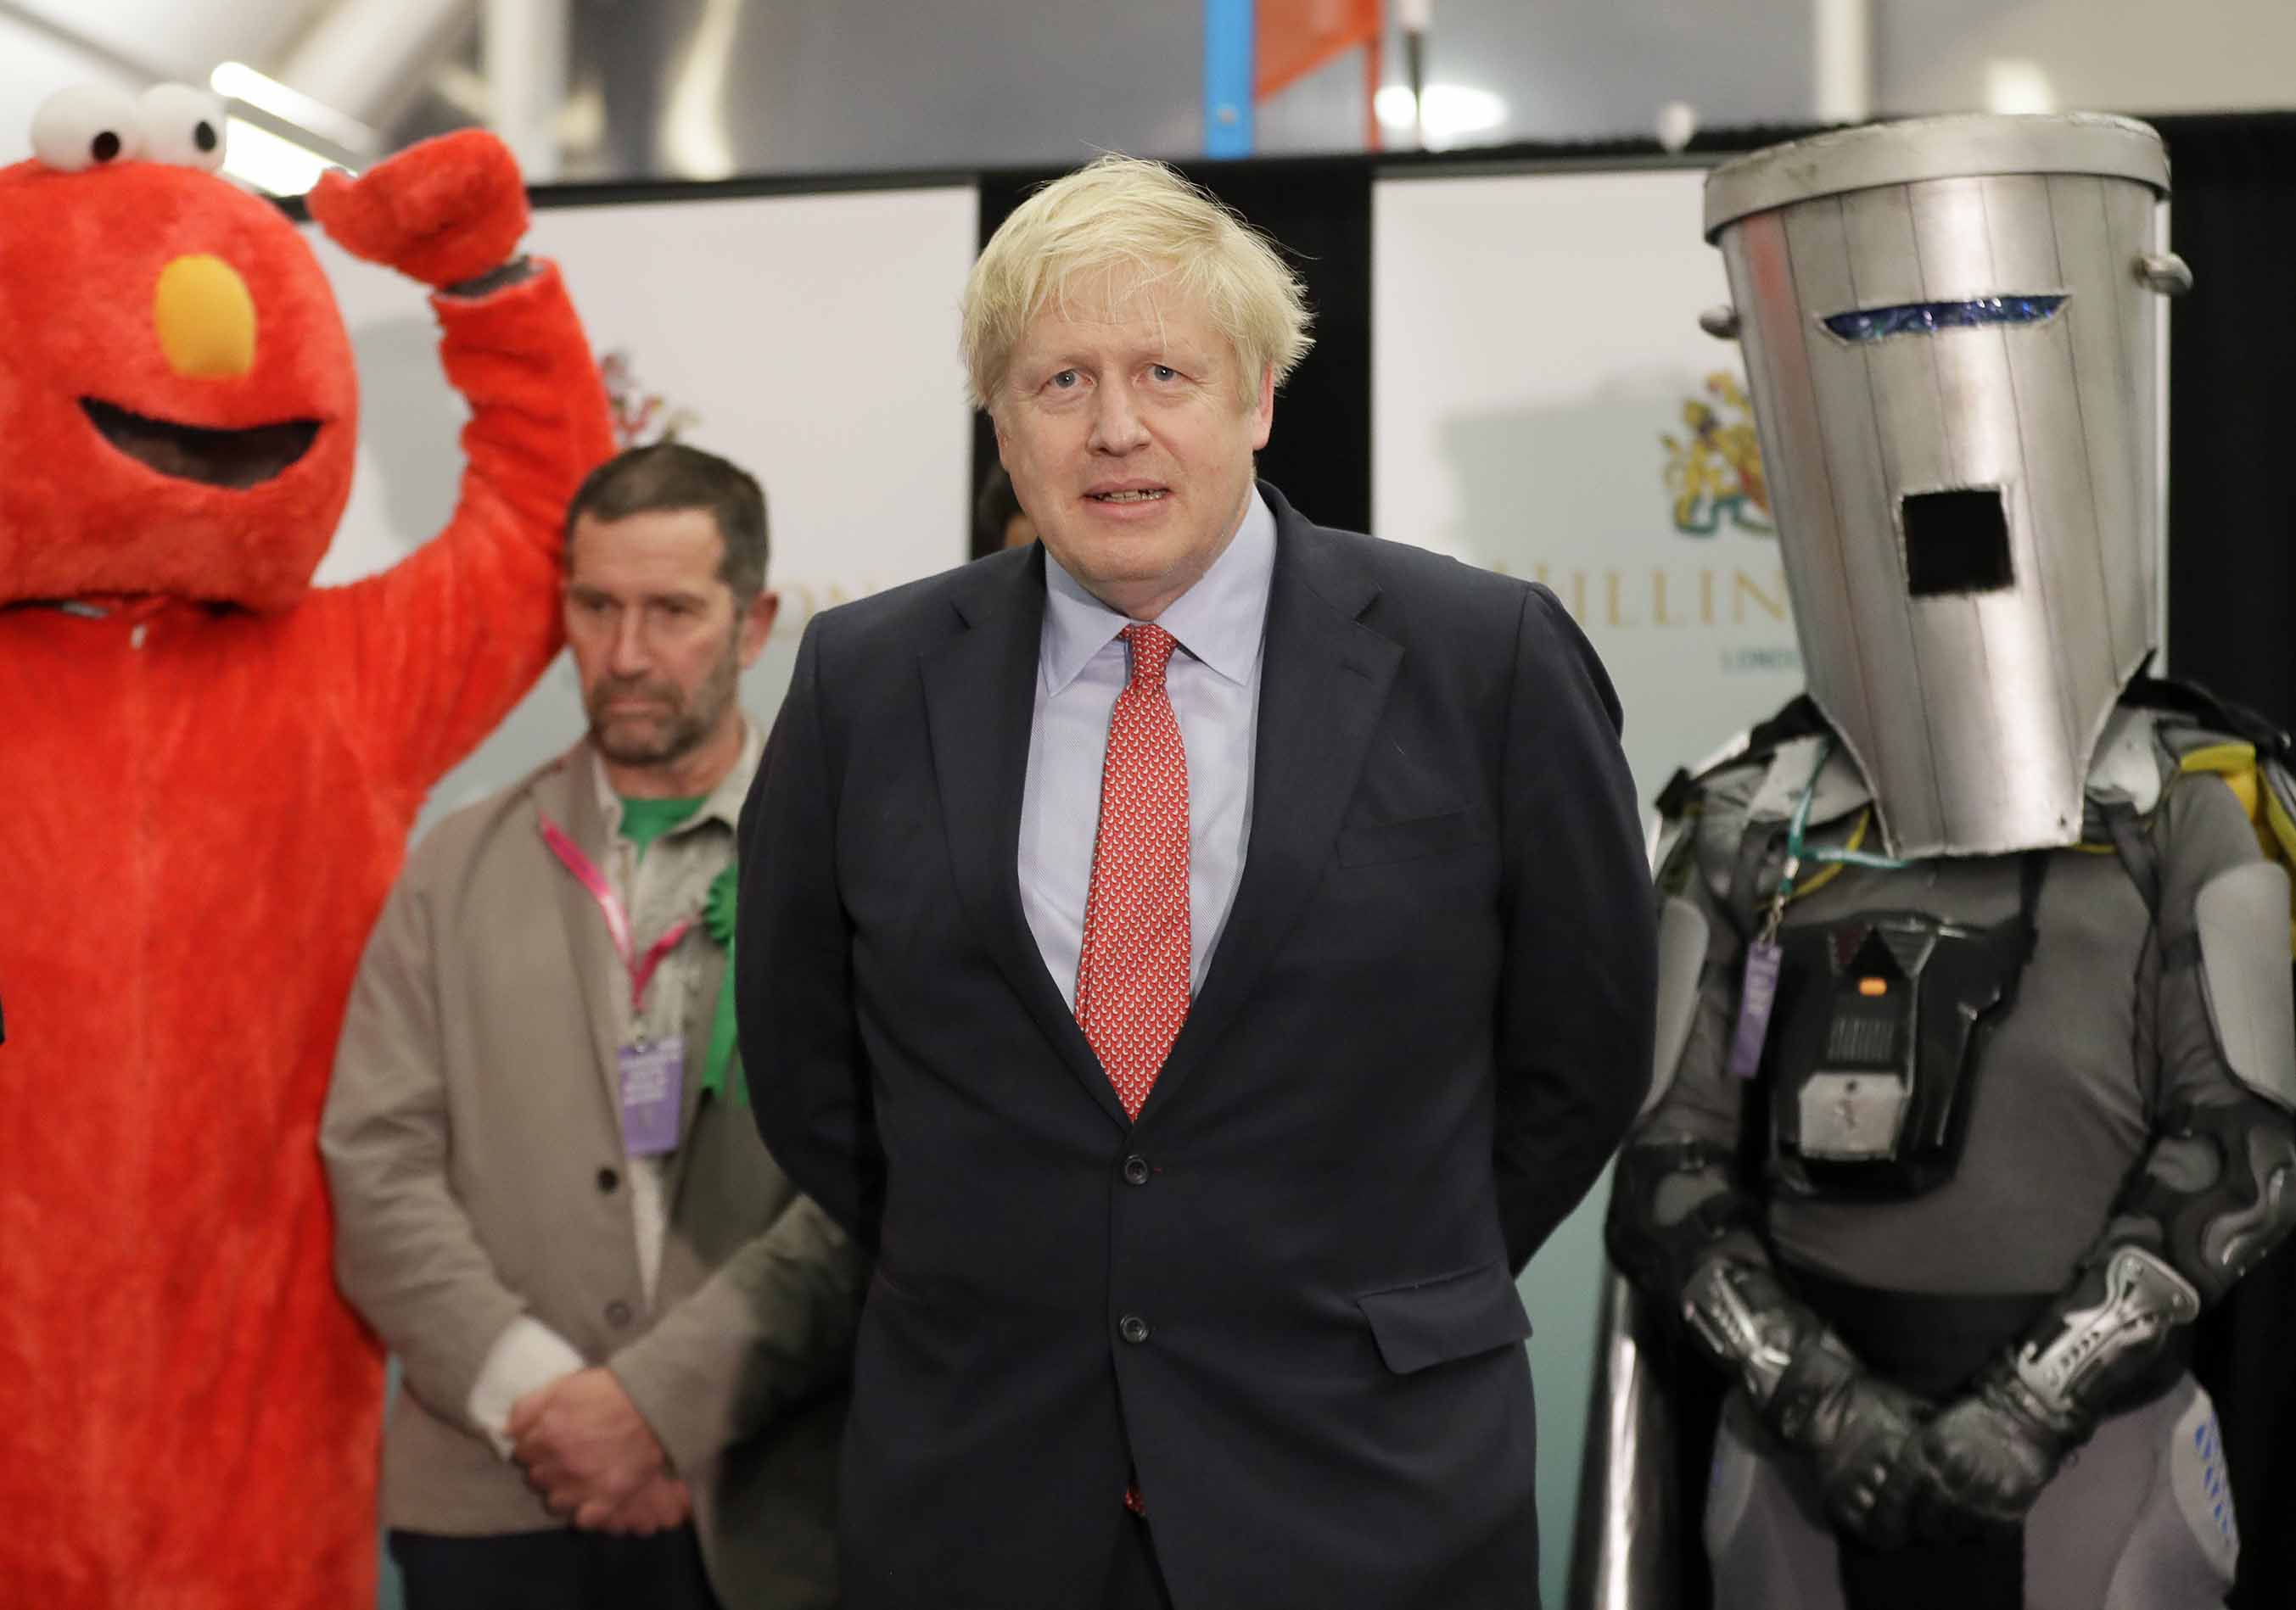 Prime Minister Boris Johnson is joined on stage by Bobby Smith, leader of the 'Give Me Back Elmo' party, and Independent candidate Count Binface during the count declaration at Brunel University in Uxbridge, London. Photo: Kirsty Wigglesworth/AP